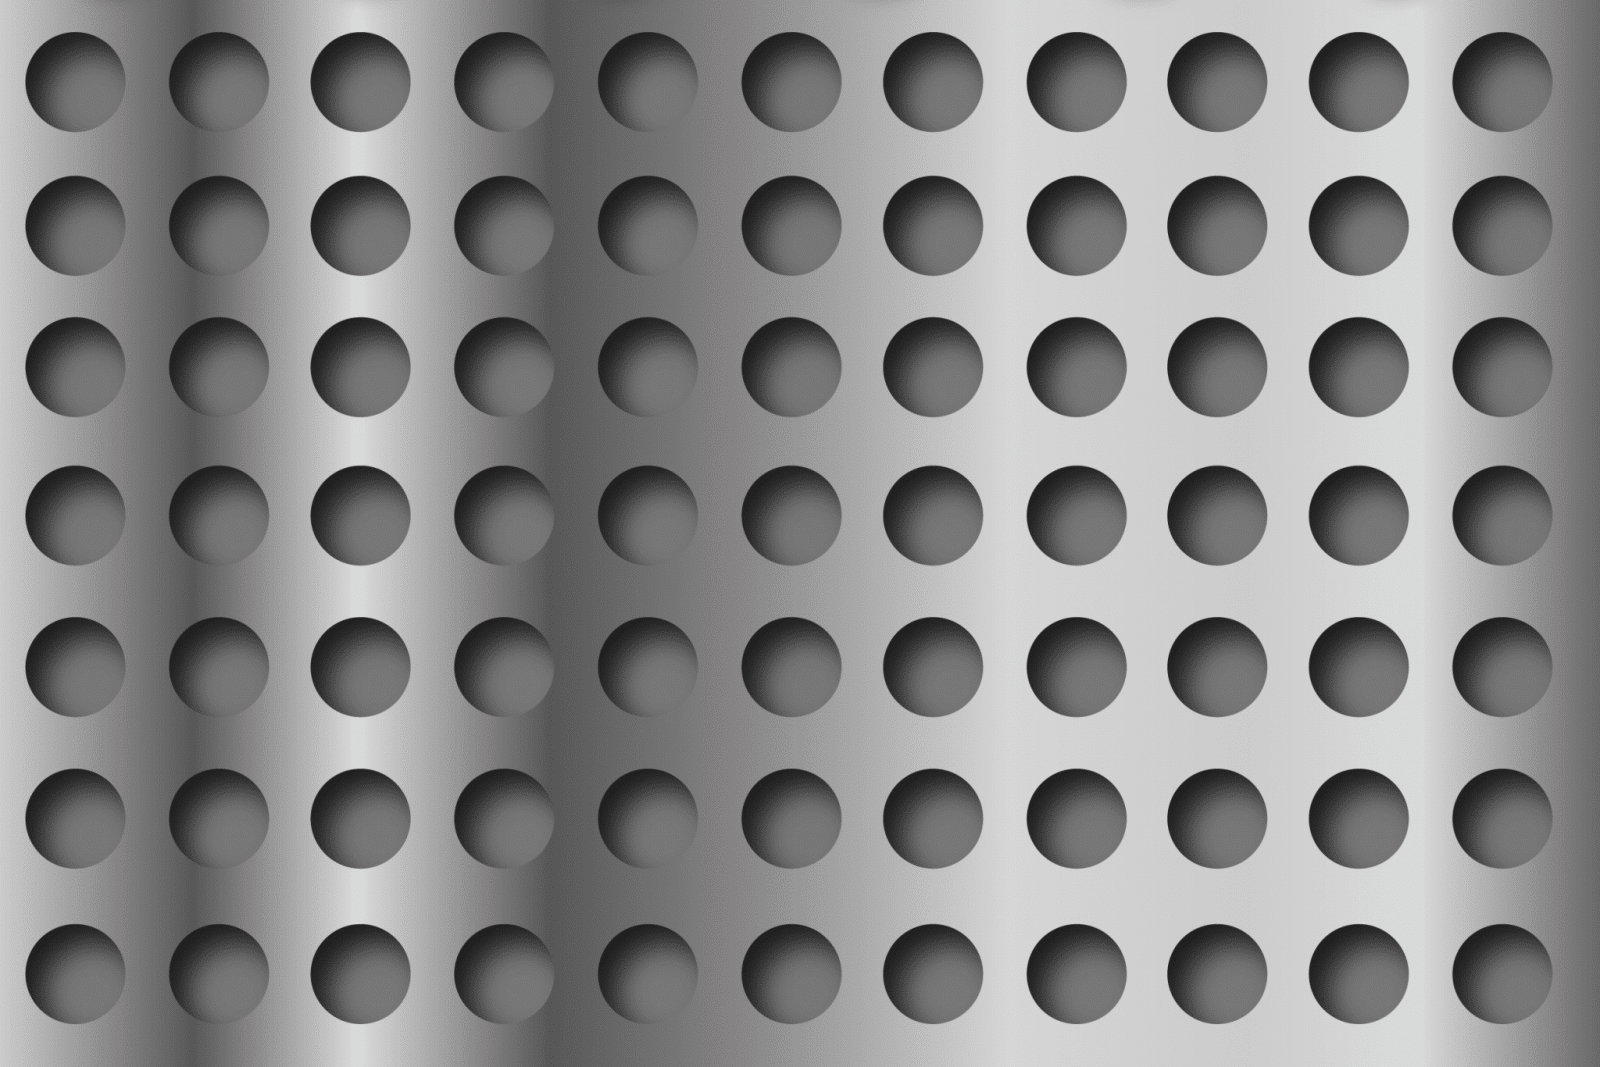 oval metal perforations in wisconsin, branko perforating wisconsin, michigan metal perforations